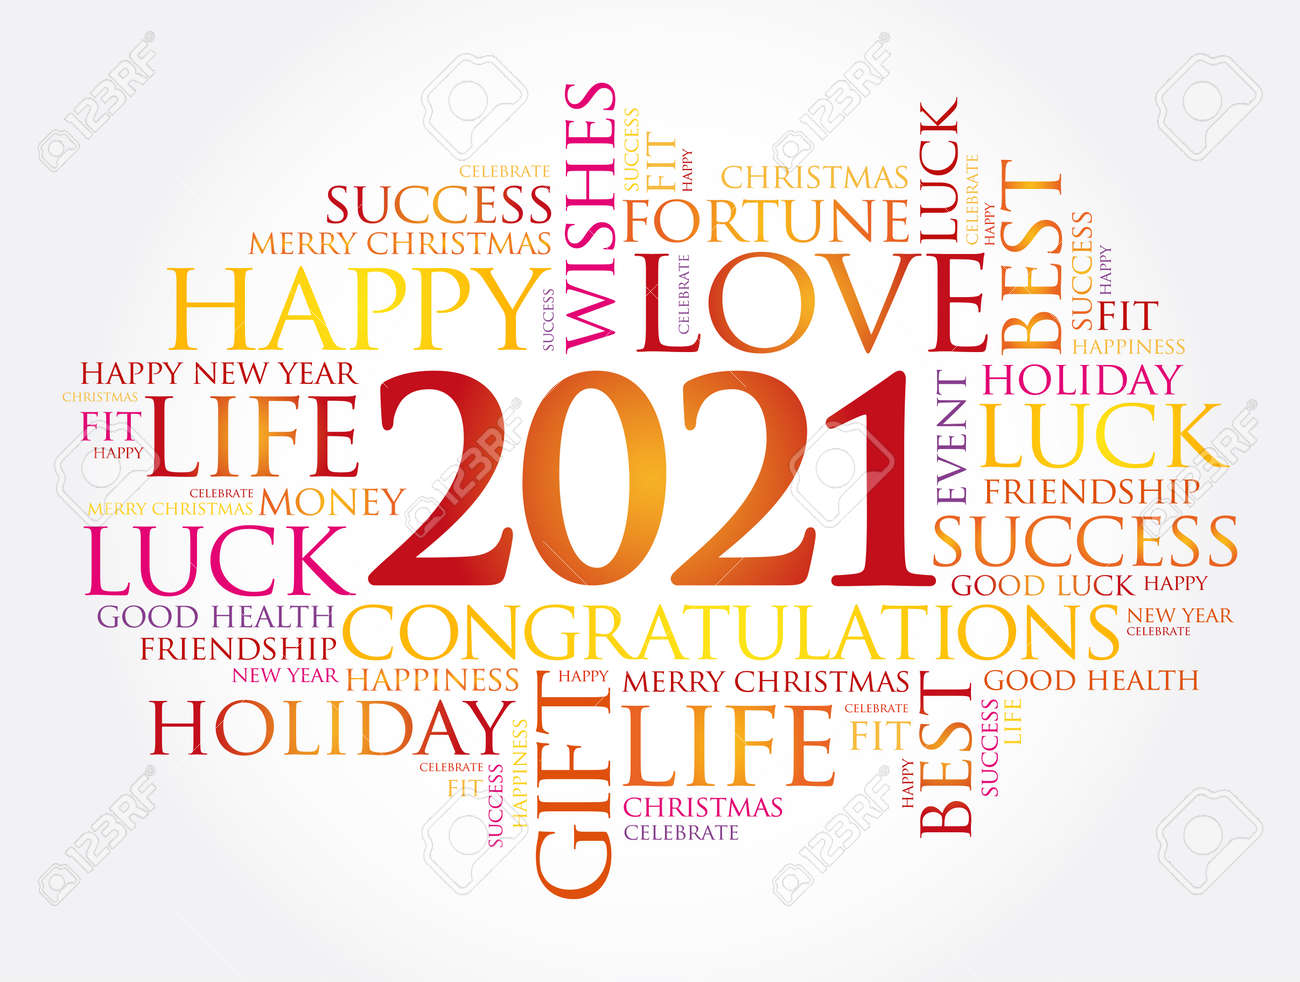 2021 year greeting word cloud collage, Happy New Year celebration greeting card - 159749770